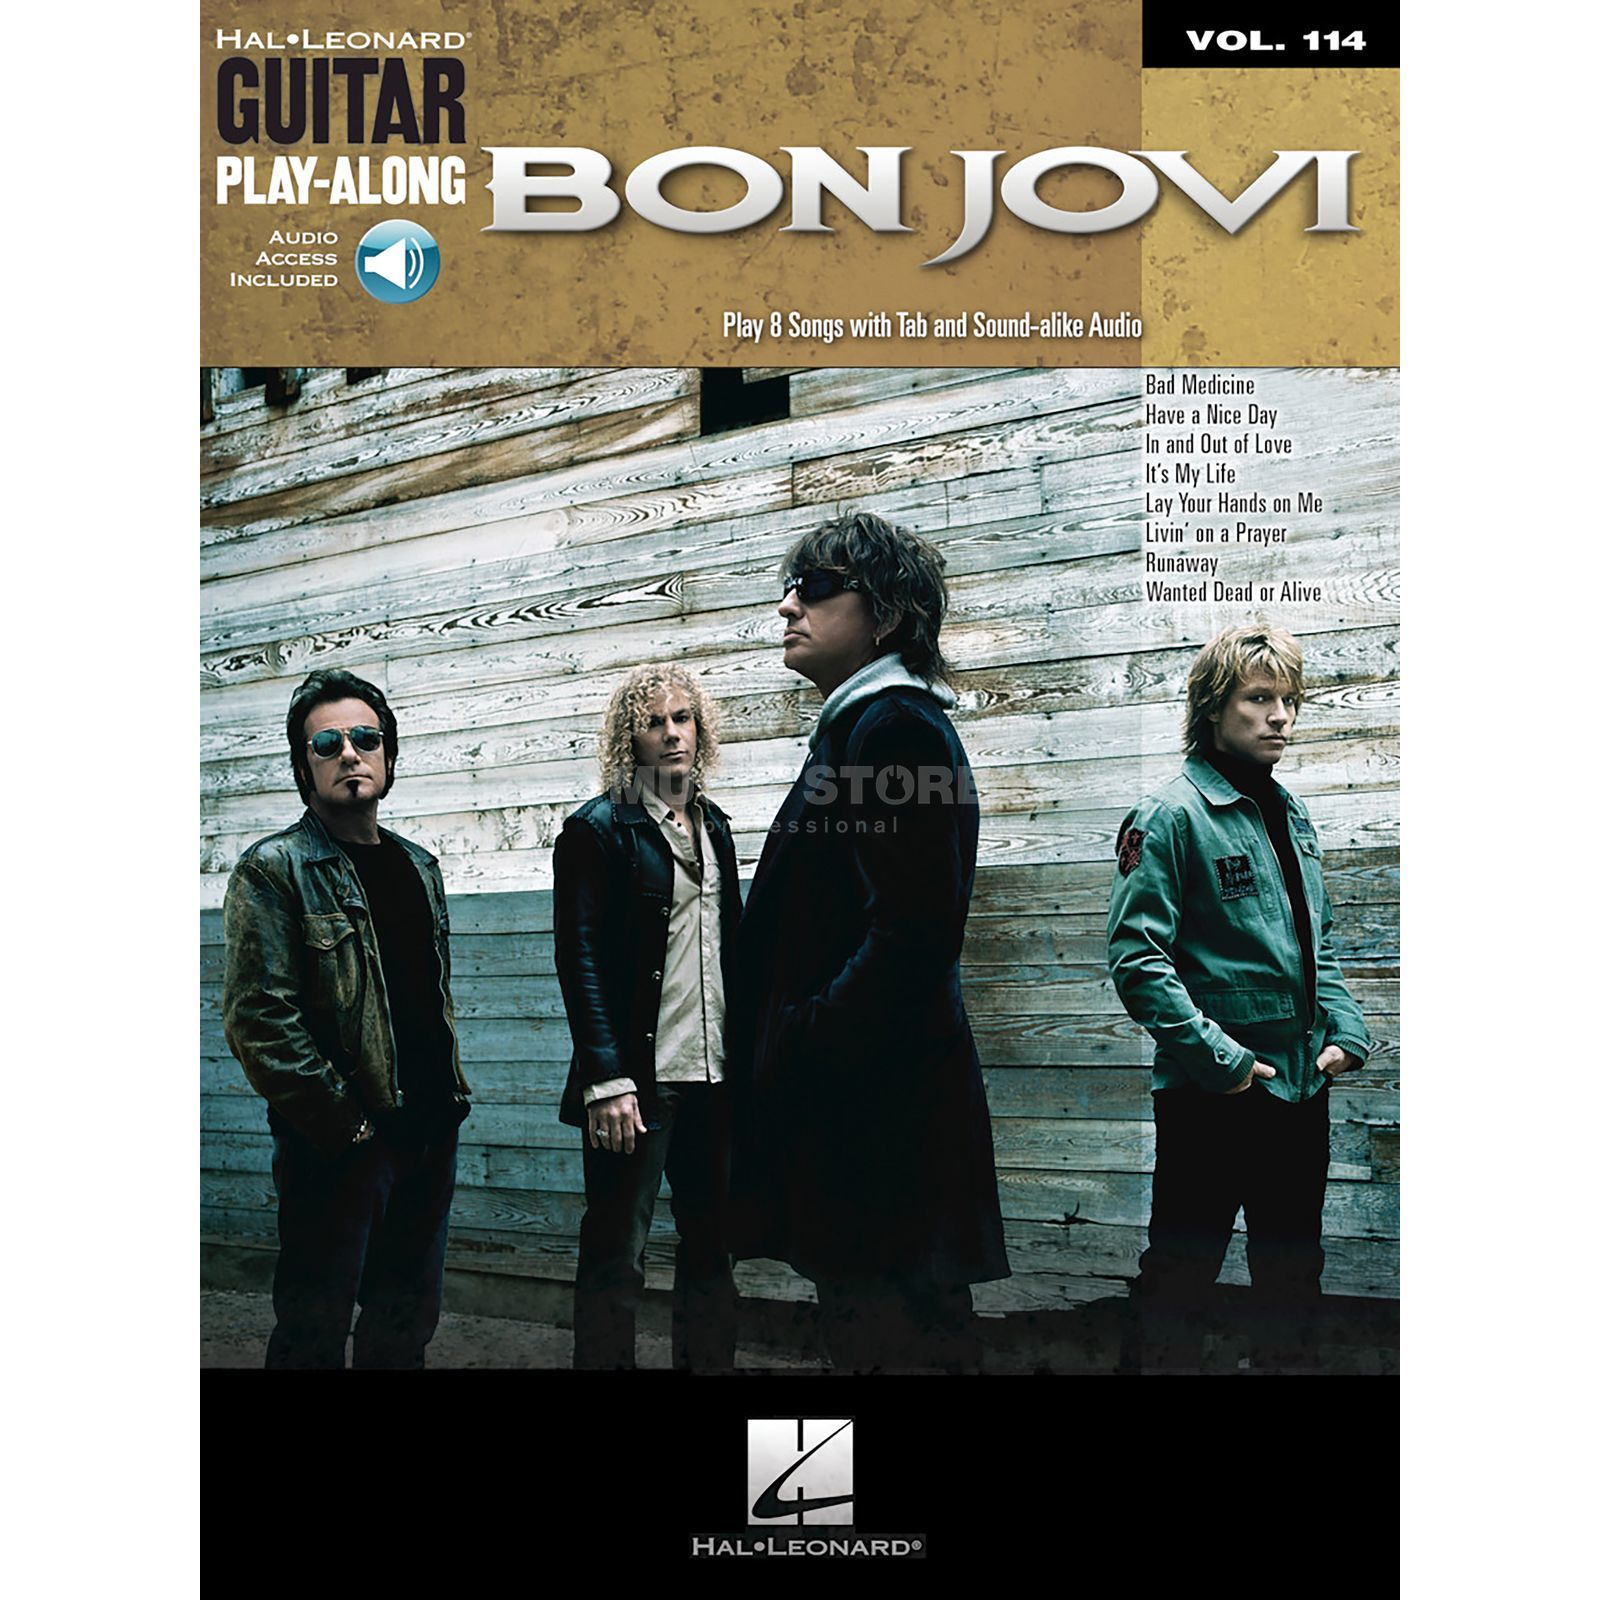 Hal Leonard Guitar Play-Along: Bon Jovi Vol. 114, TAB und CD Produktbild